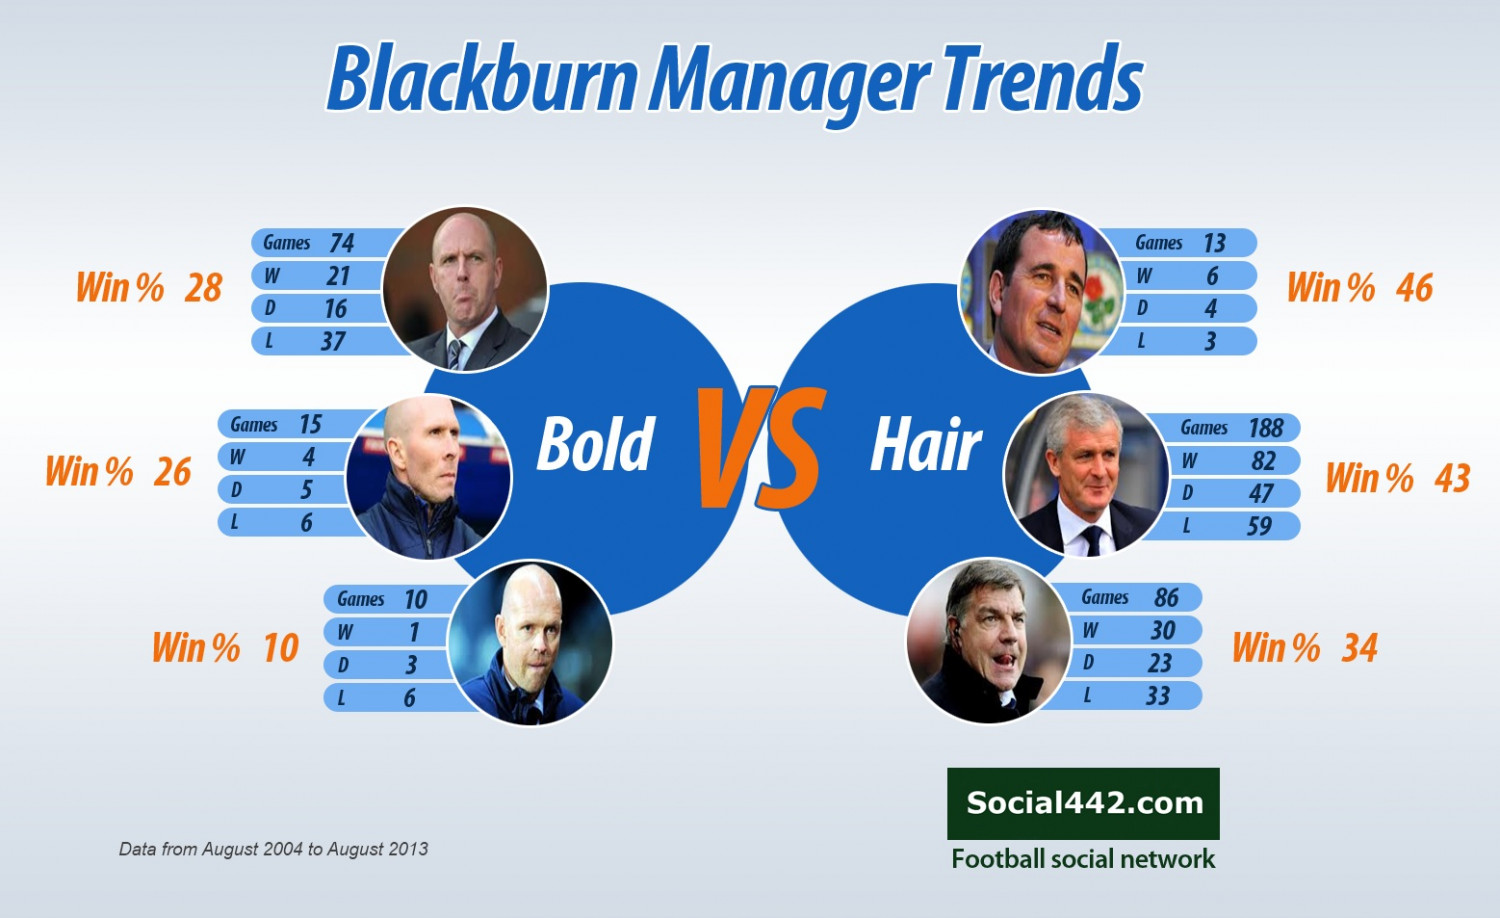 Blackburn football manager trends Infographic